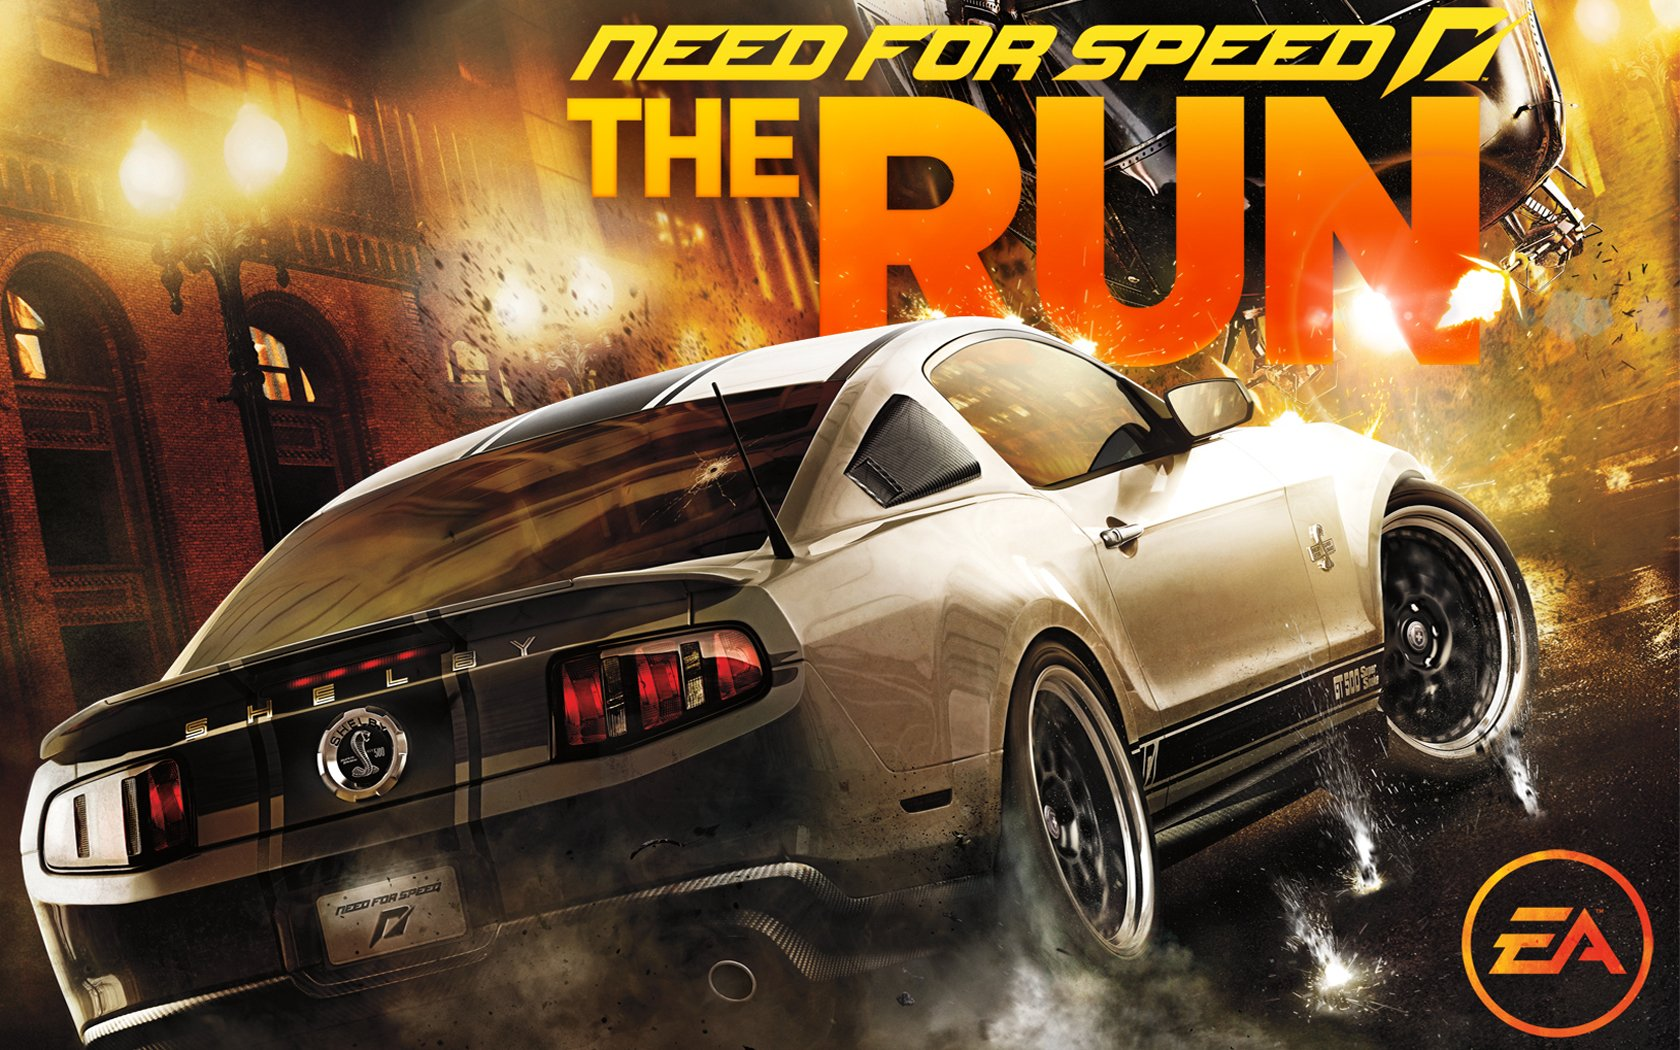 need_for_speed_the_run_wallpaper